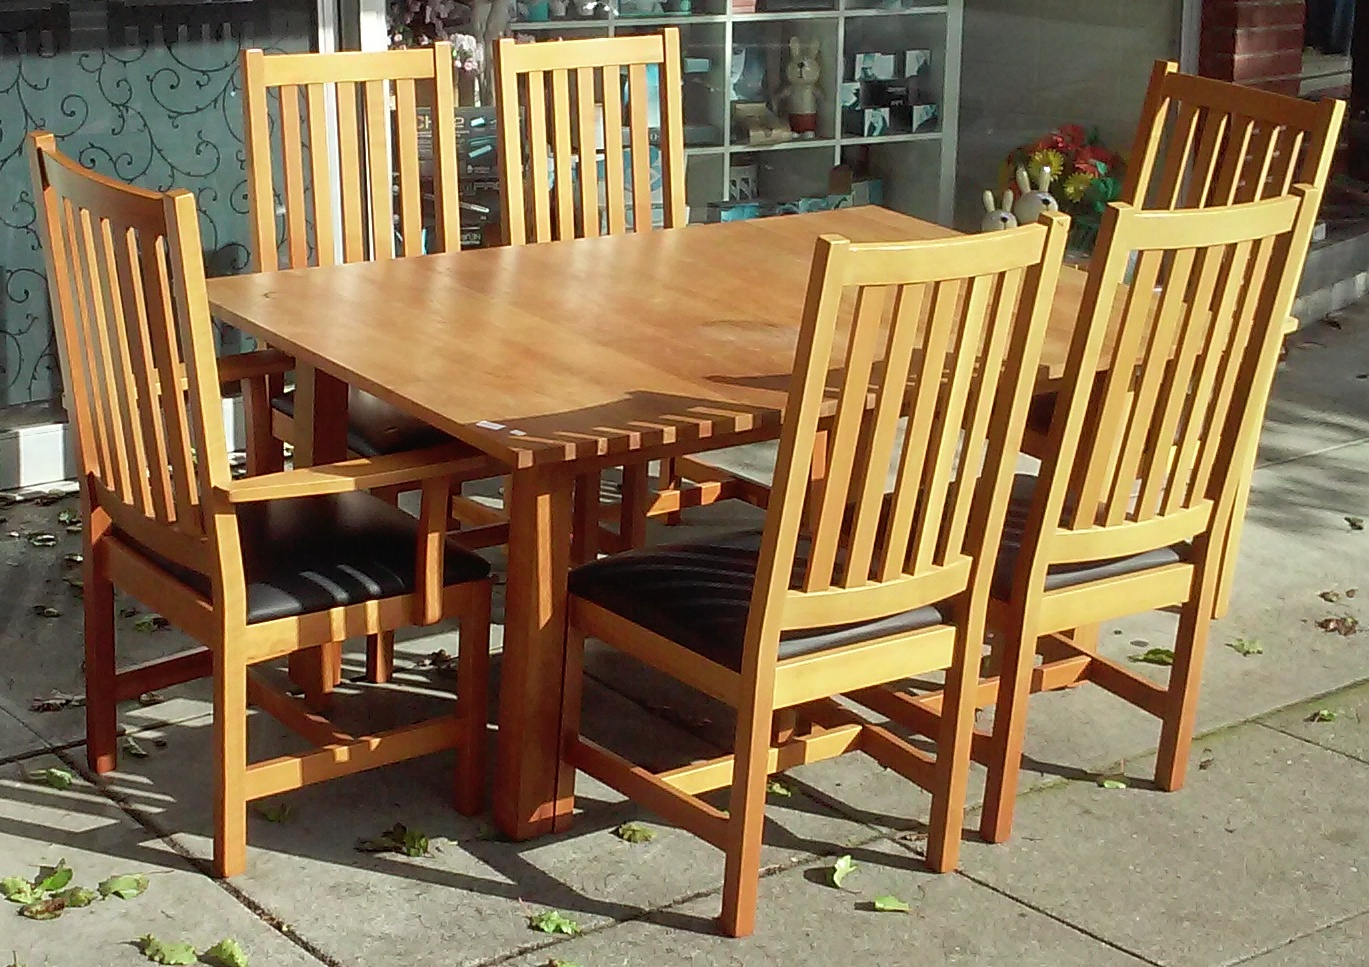 Genial Posted By Uhuru Furniture U0026 Collectibles   Oakland At 2:29 PM